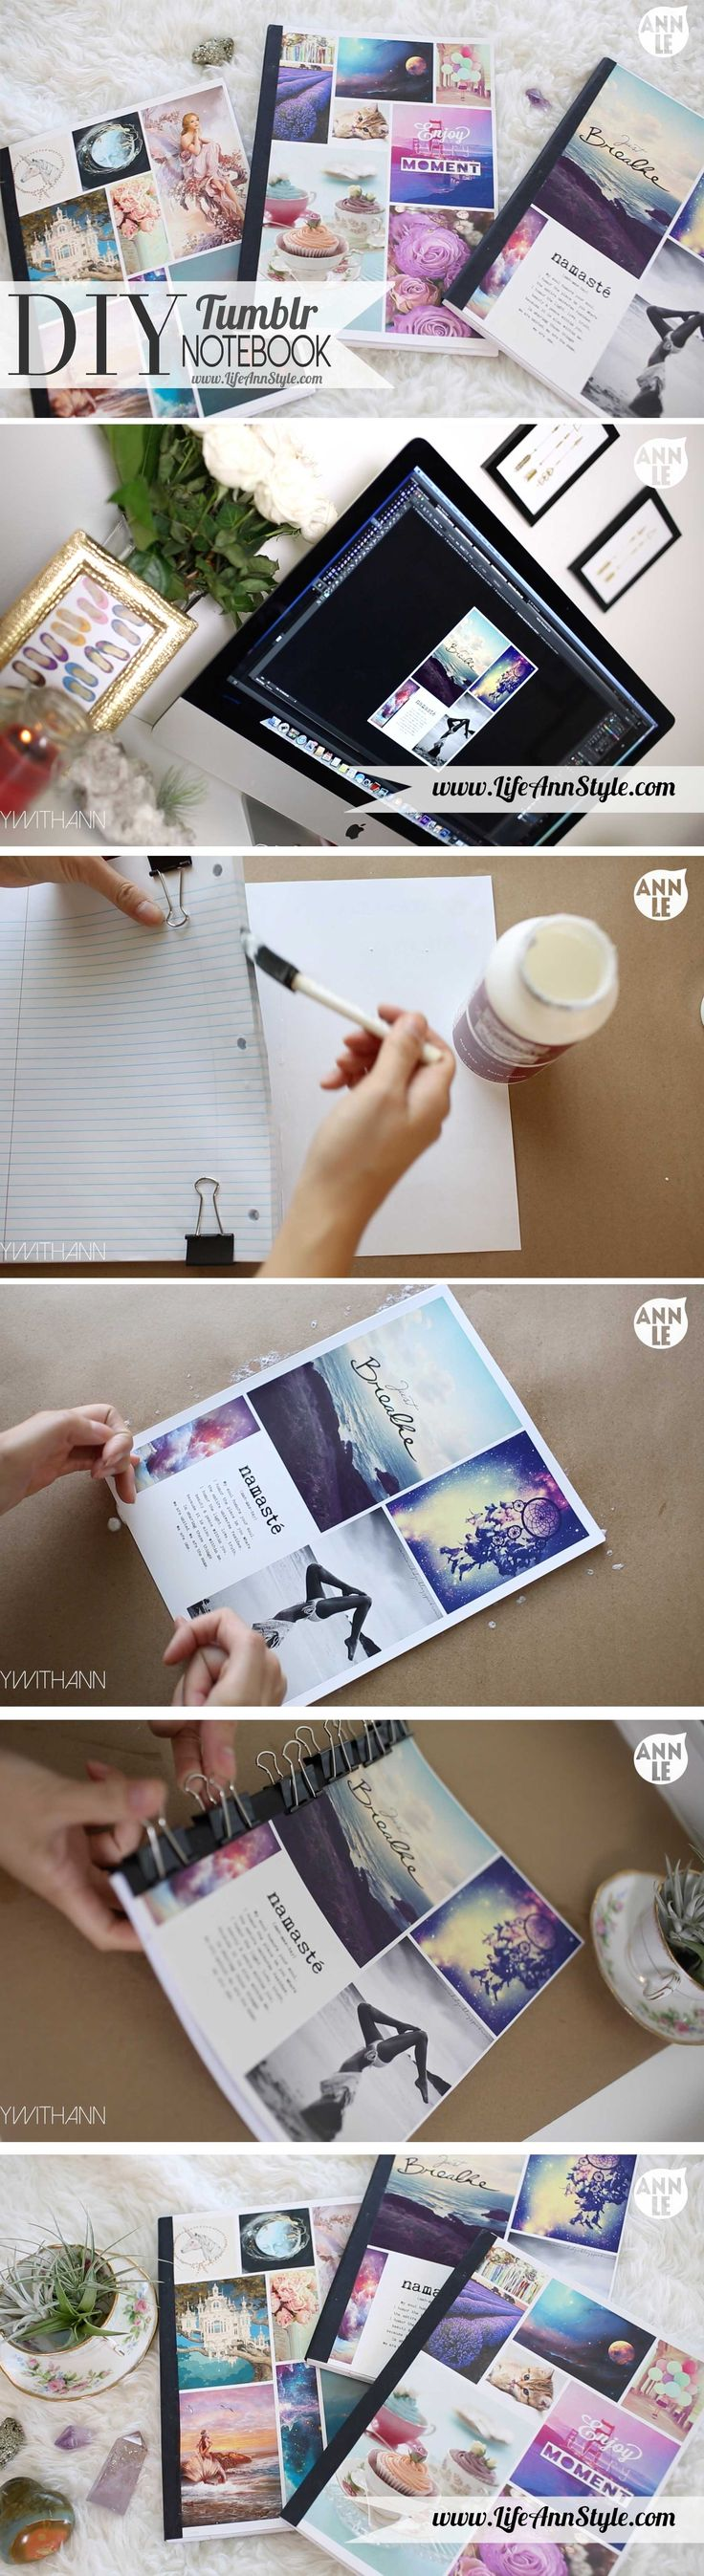 DIY Tumblr Inspired Notebook - I made one and I'm definately going to make more